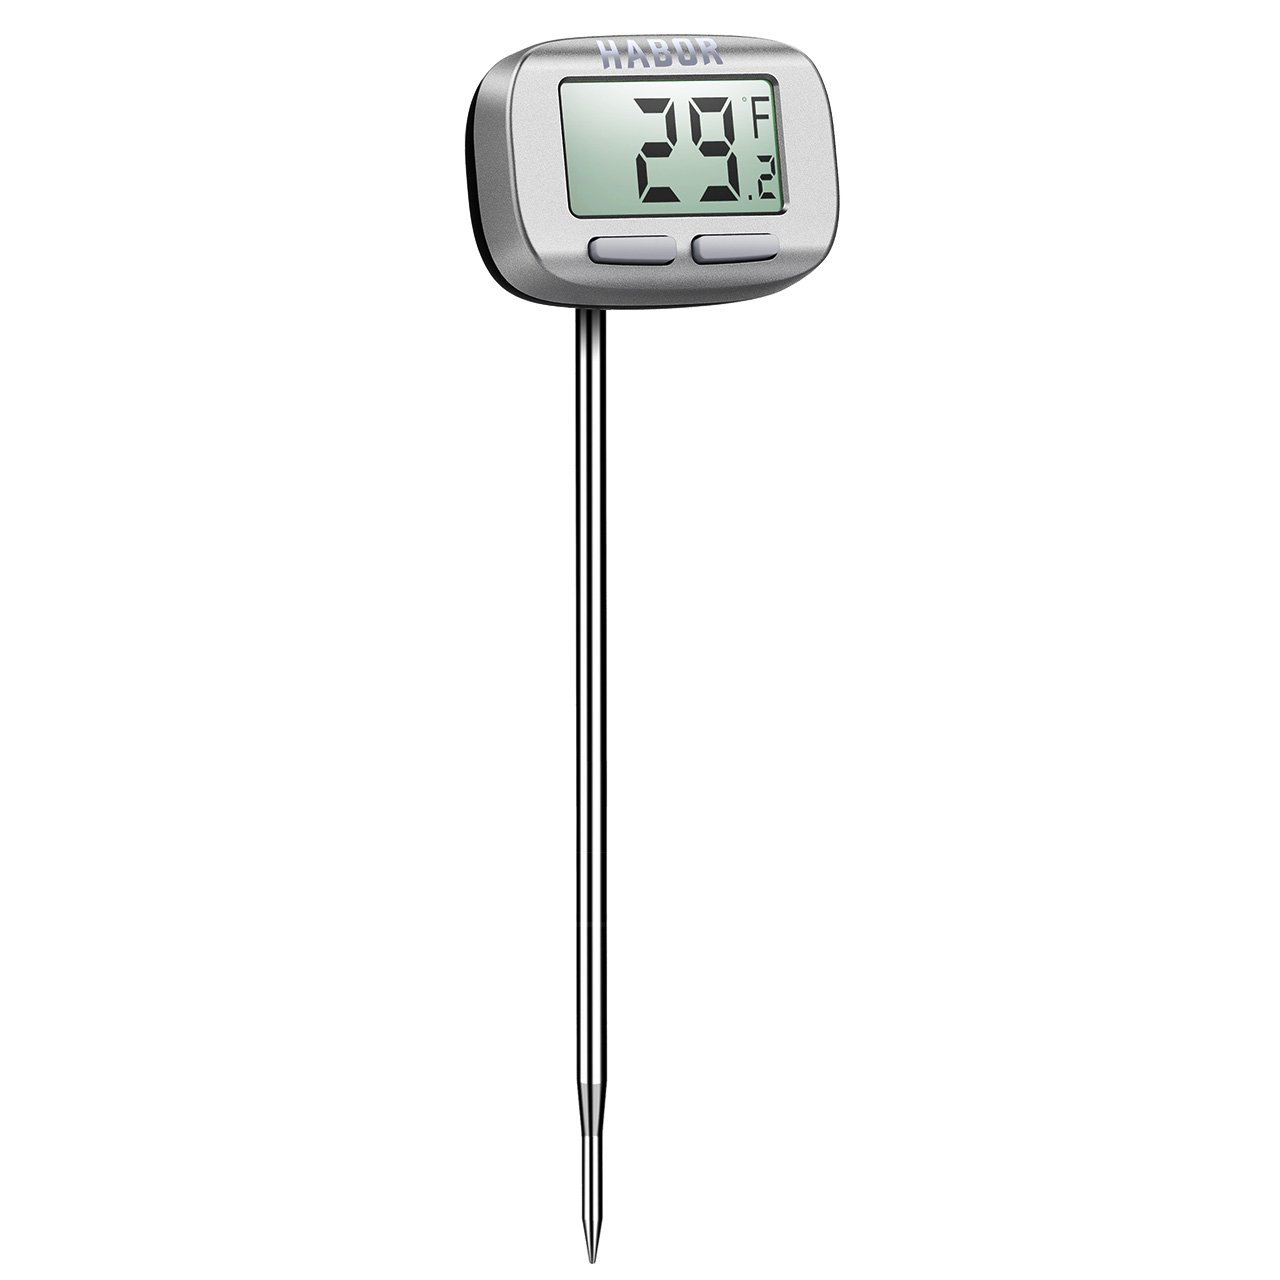 Habor CP021 Digital Cooking Meat Thermometer with Instant Read-out, Long Probe, Swiveling Head for Kitchen, BBQ, Steak, Turkey, Candy, Milk